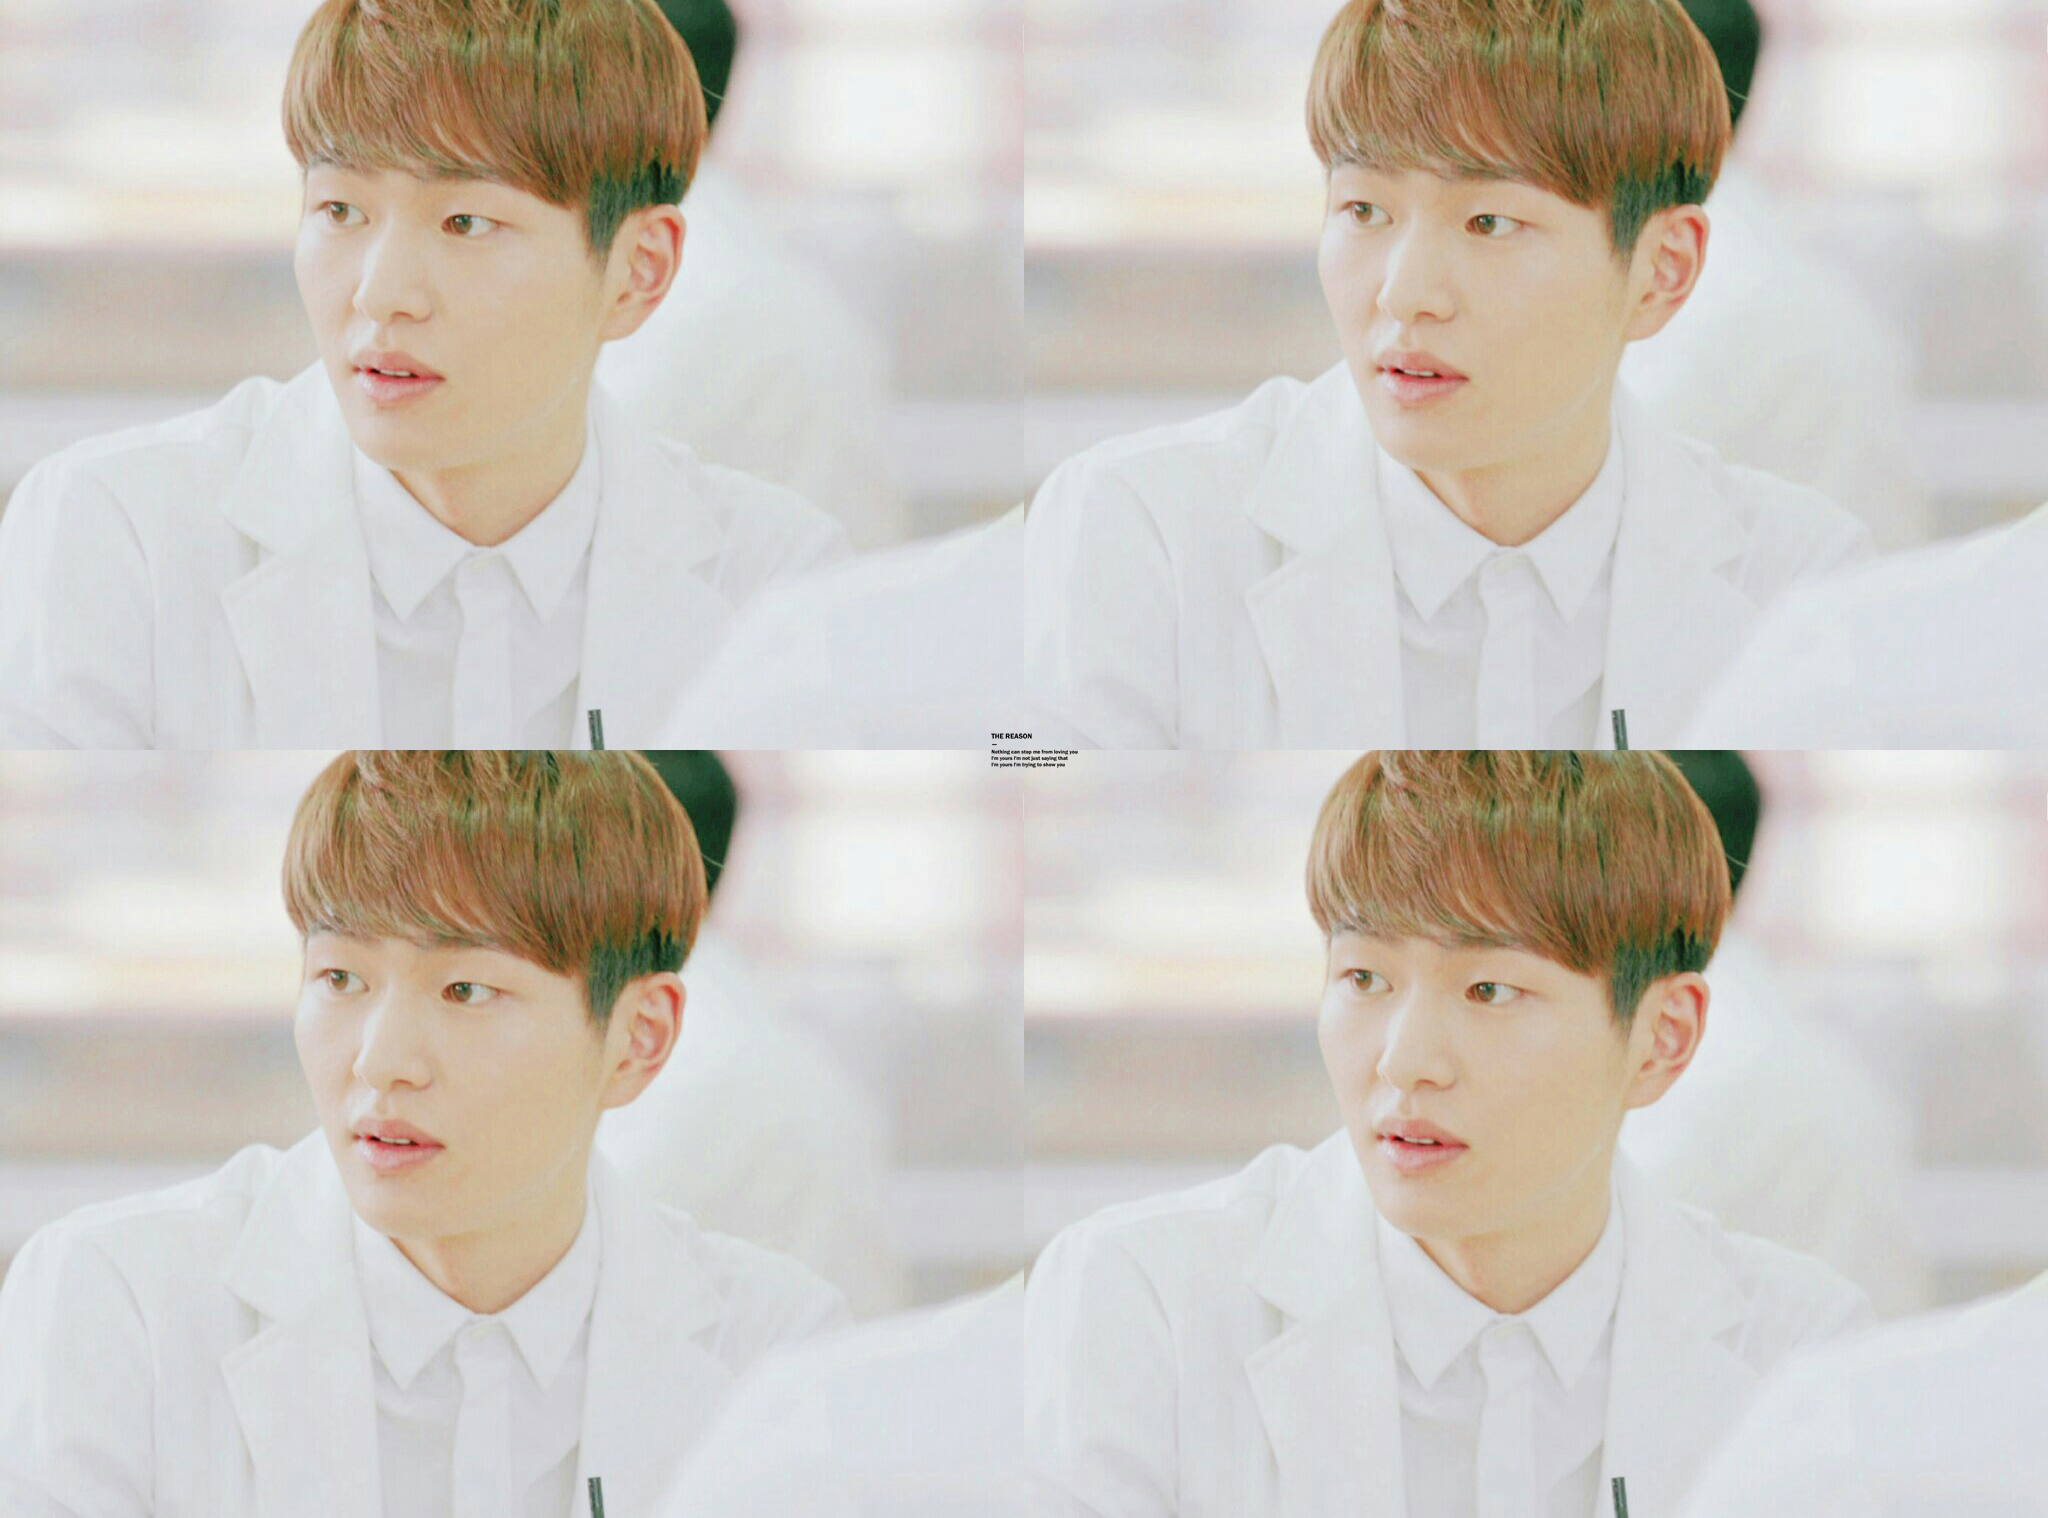 [Caps] 160225 Onew @ Descendants of the Sun EP01 24639283463_b3f639e92a_o